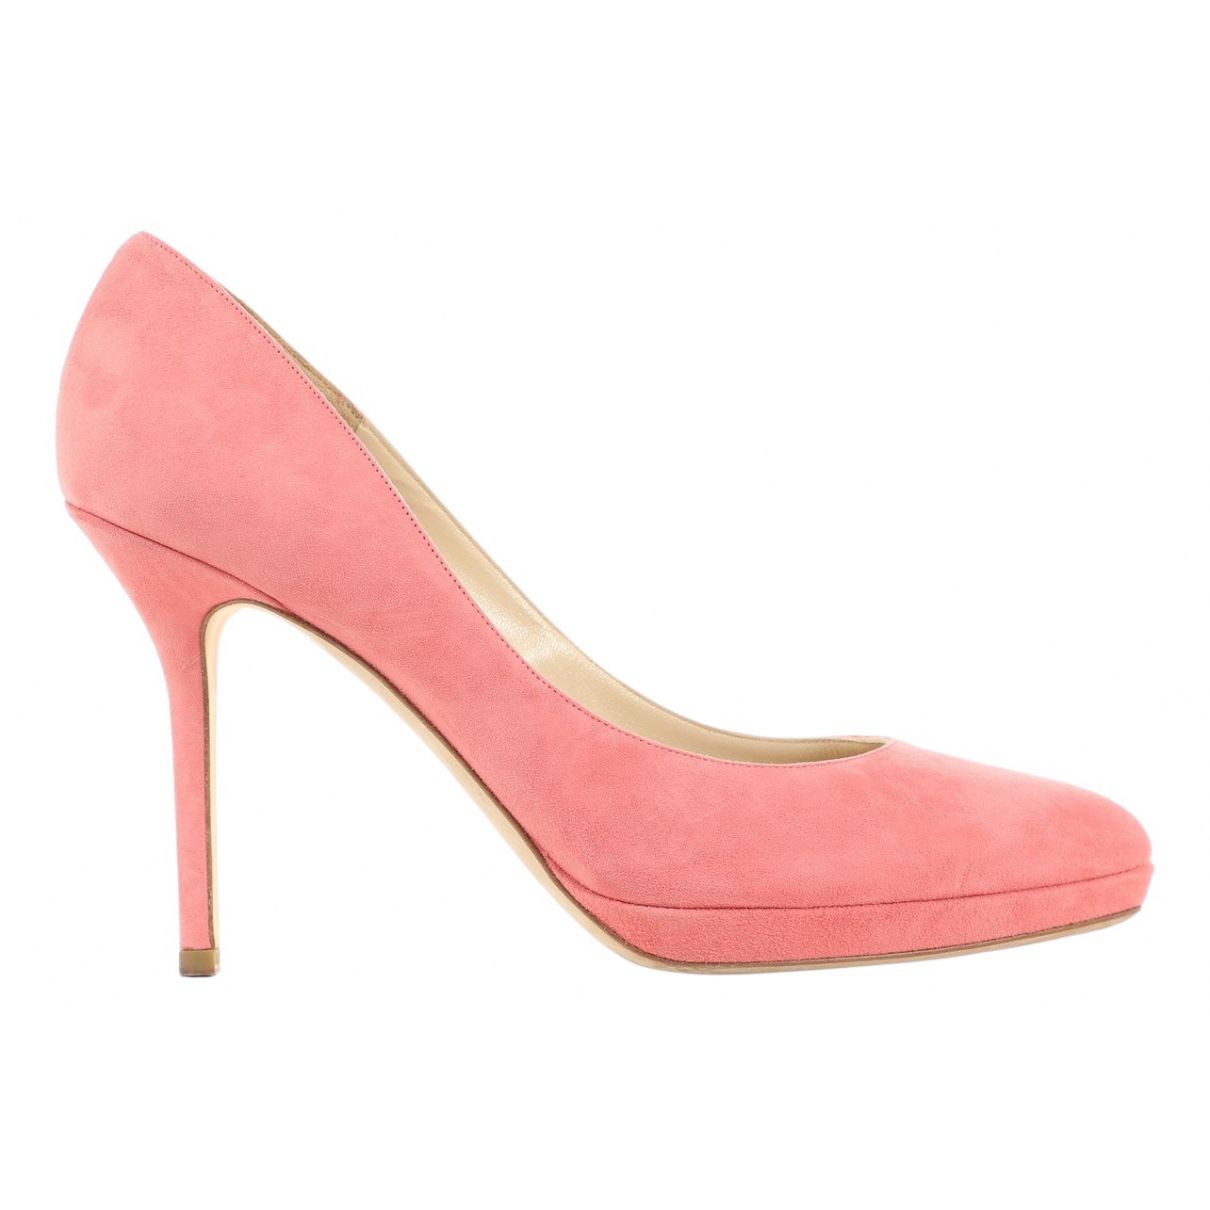 Jimmy Choo Esme Pink Suede Heels for Women 39 EU